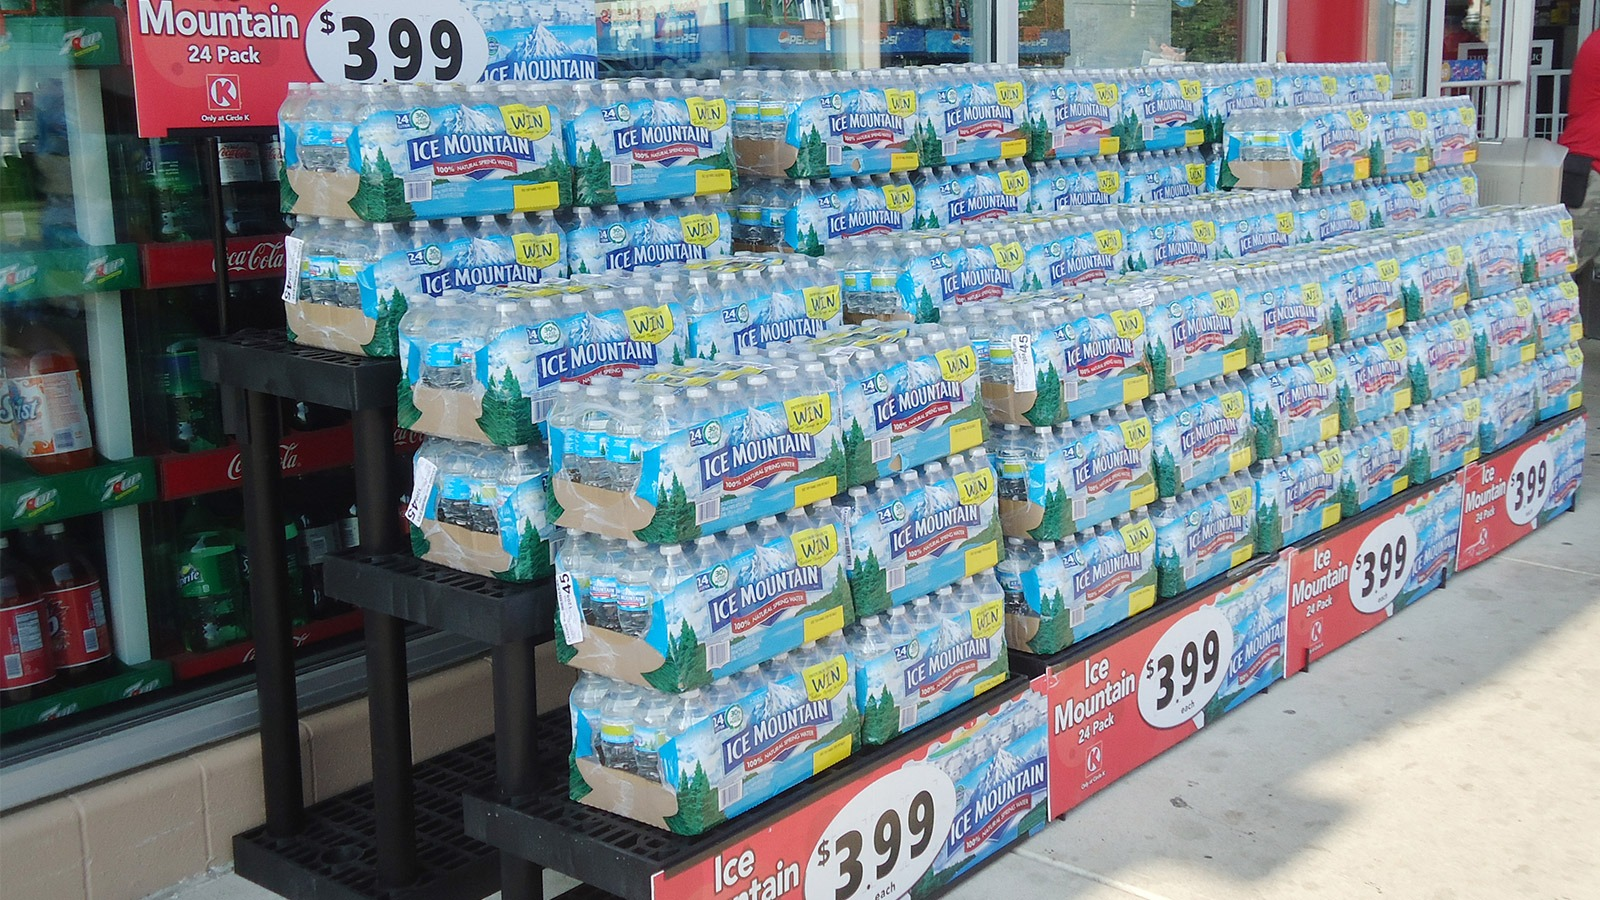 Exterior display with cases of water.